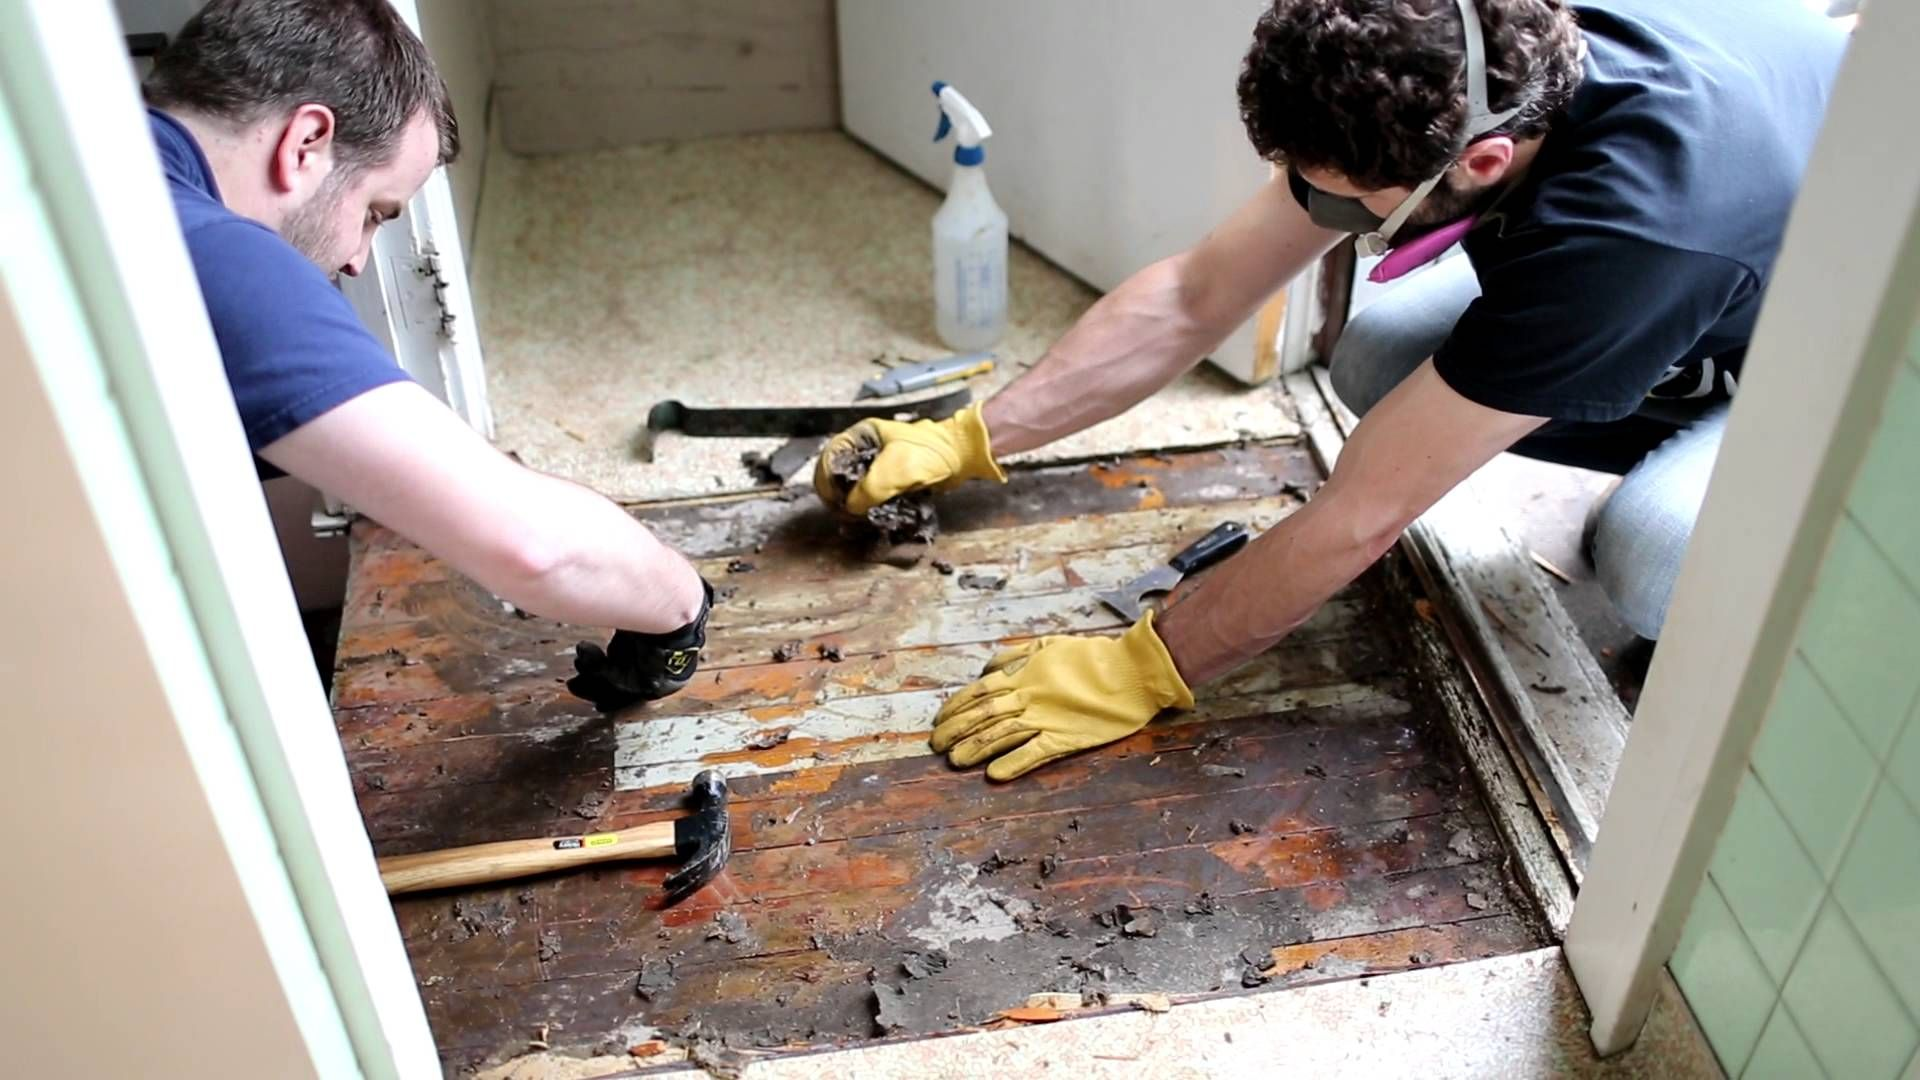 CONCERNED ABOUT ASBESTOS? There is a lot of concern when